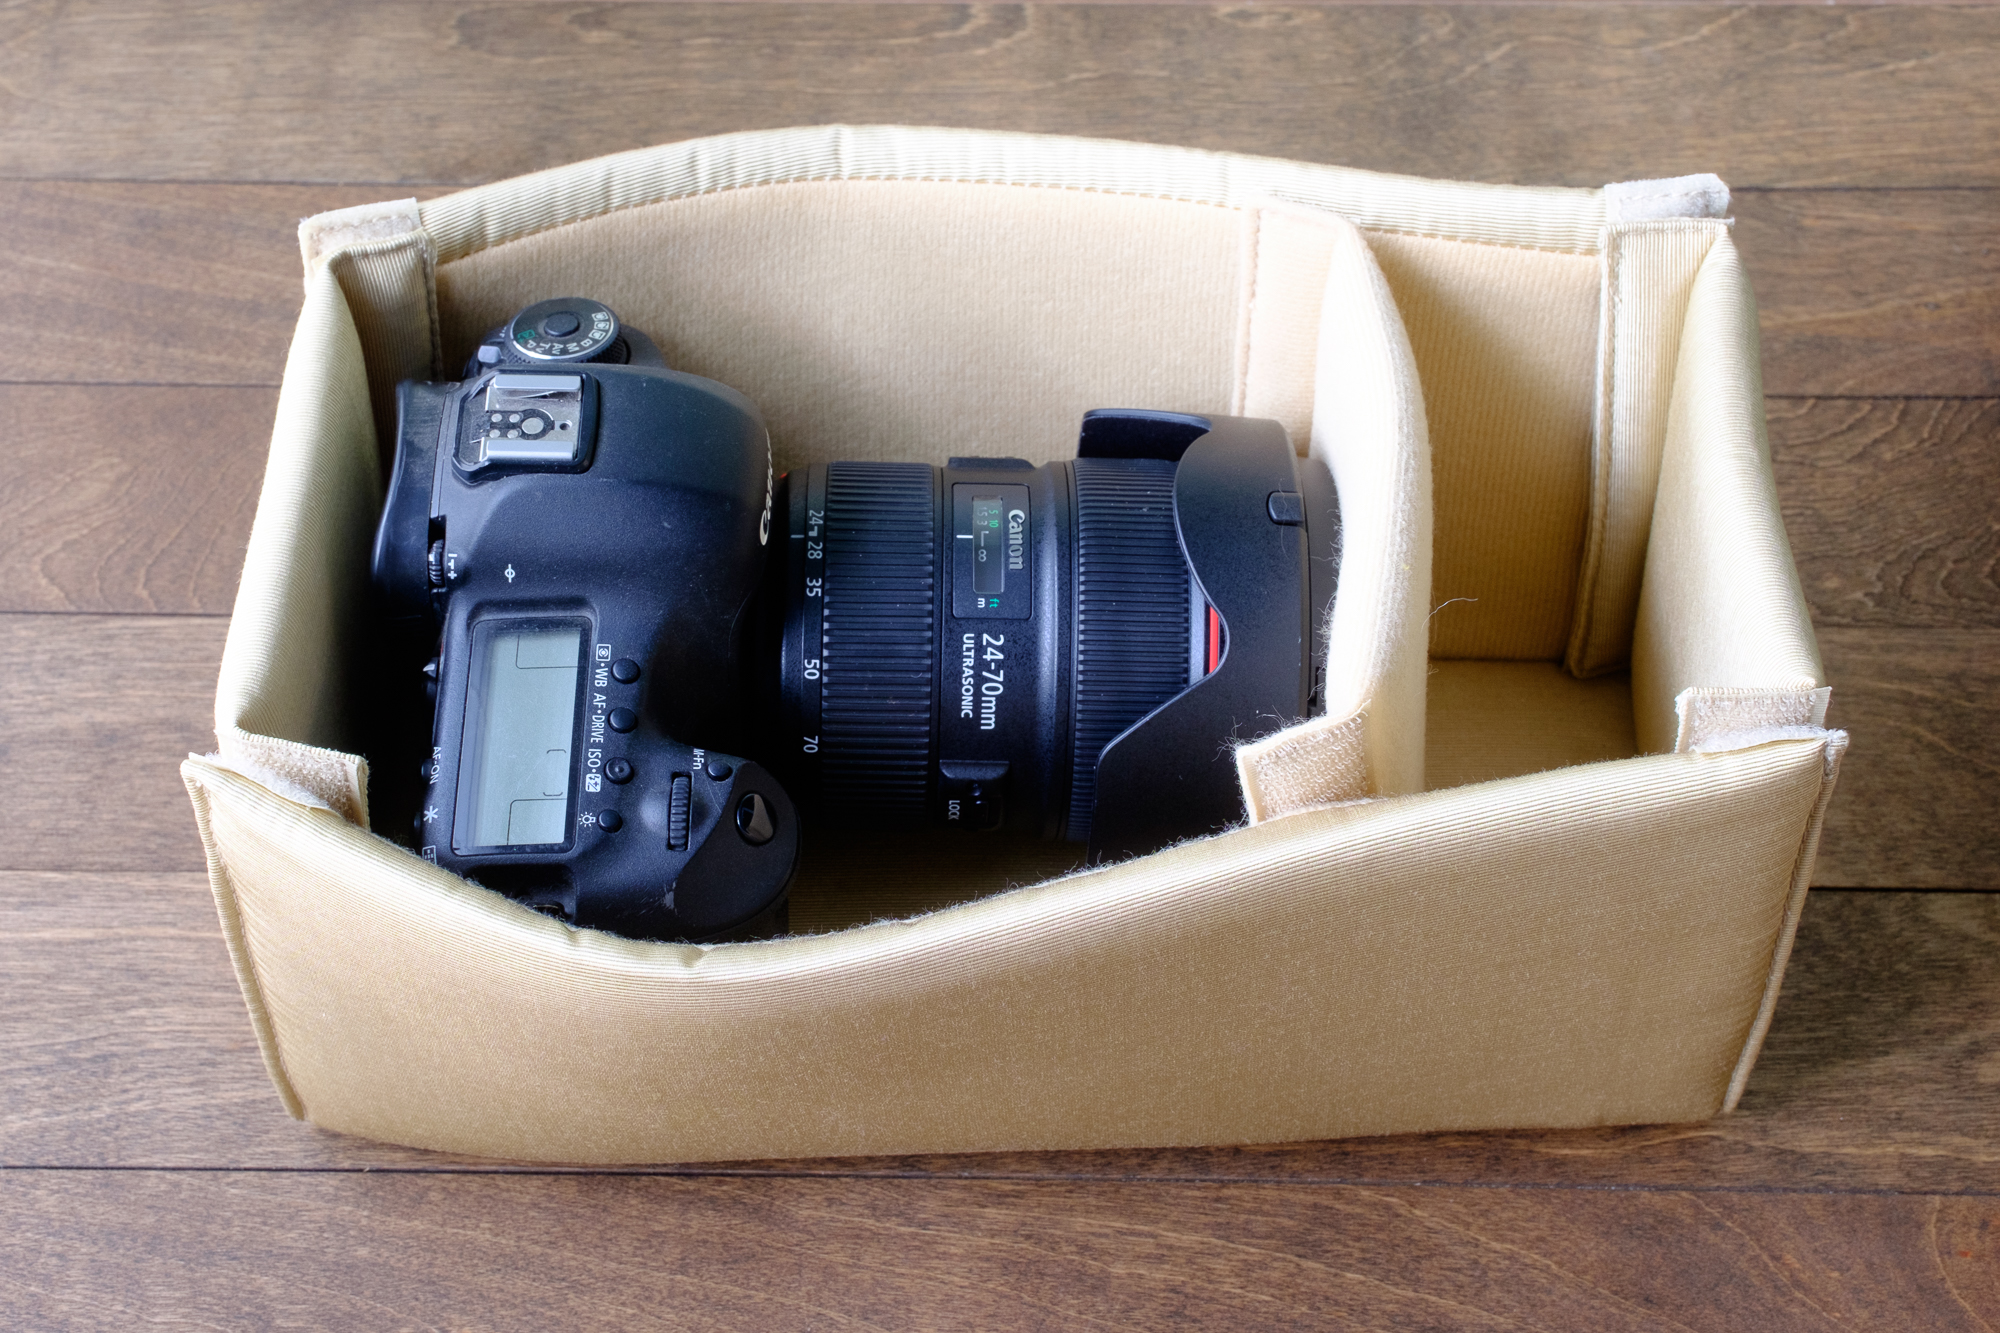 Canon 5D Mark III with Canon 24-70mm lens (attached, set horizontally)